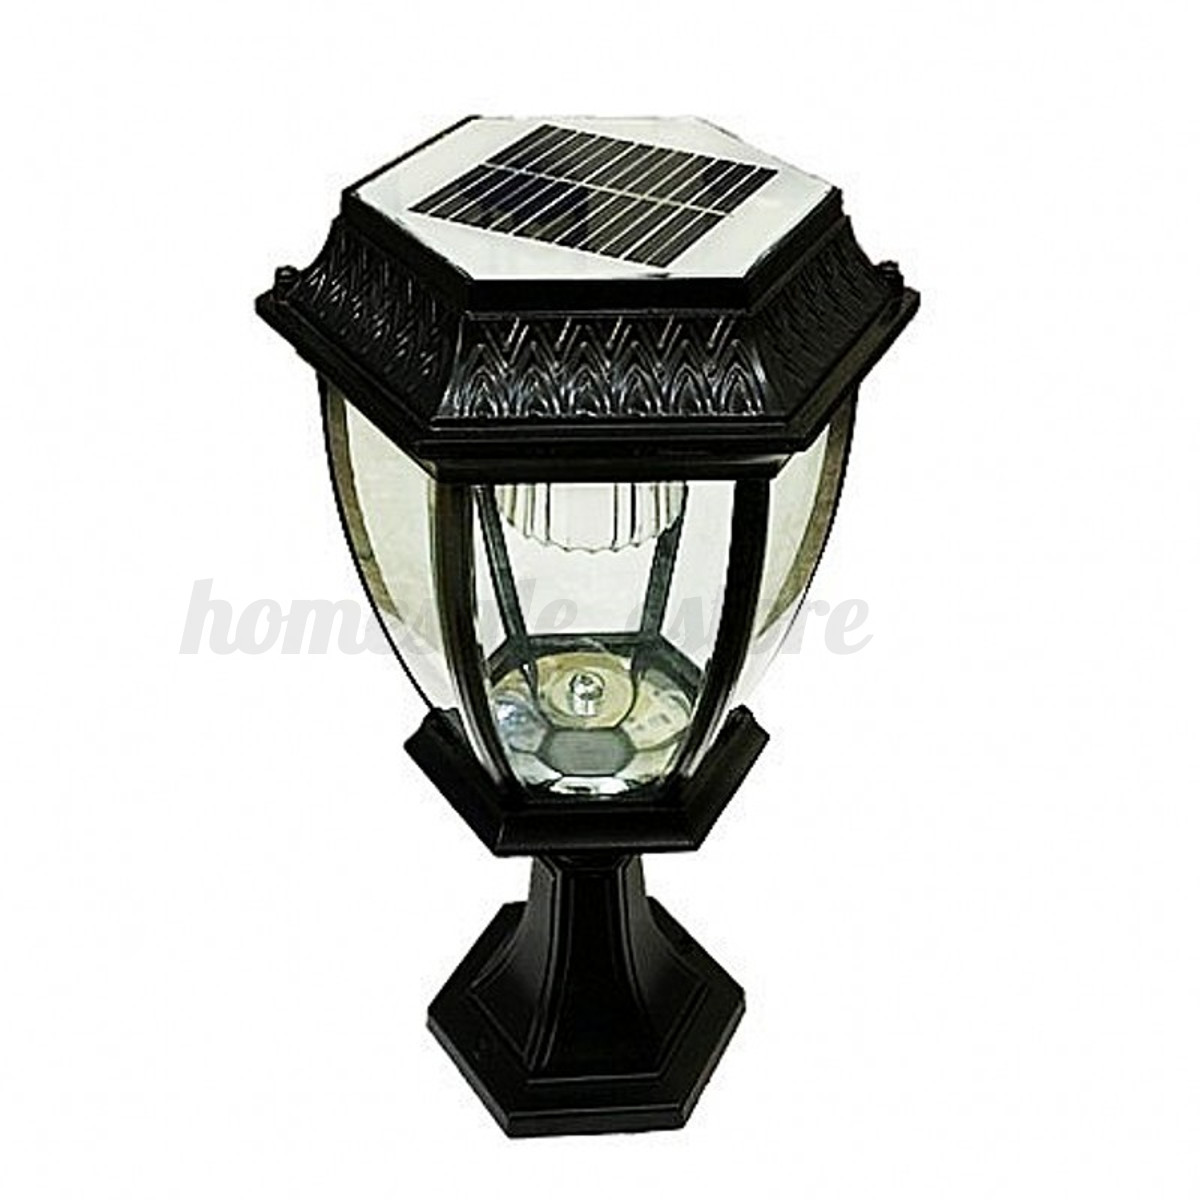 Outdoor exterior solar powered led pillar light post lamp garden yard lantern ebay for Solar exterior post lantern light